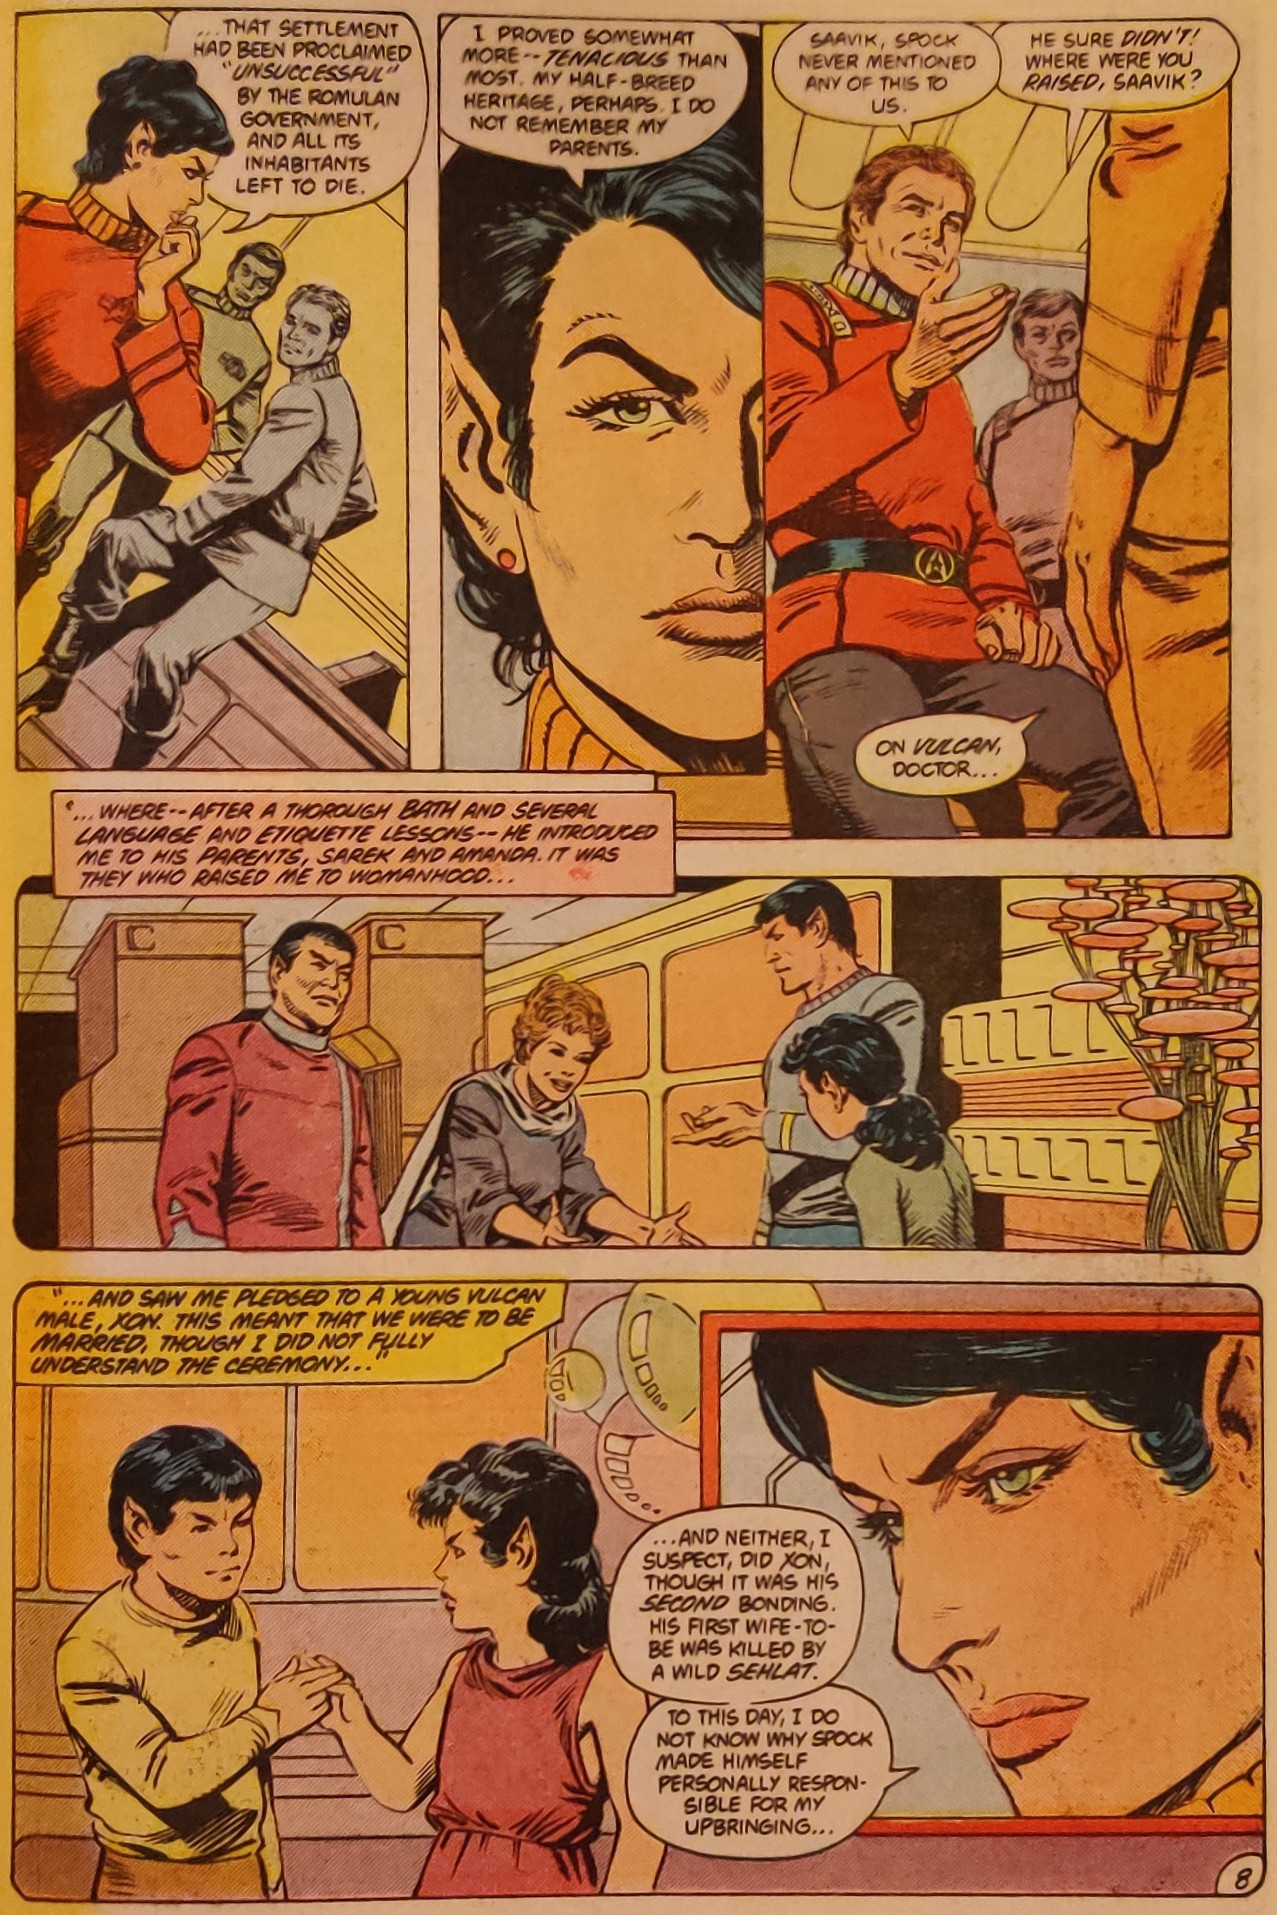 DC Comics Star Trek Issue 6 - Saavik's Origins